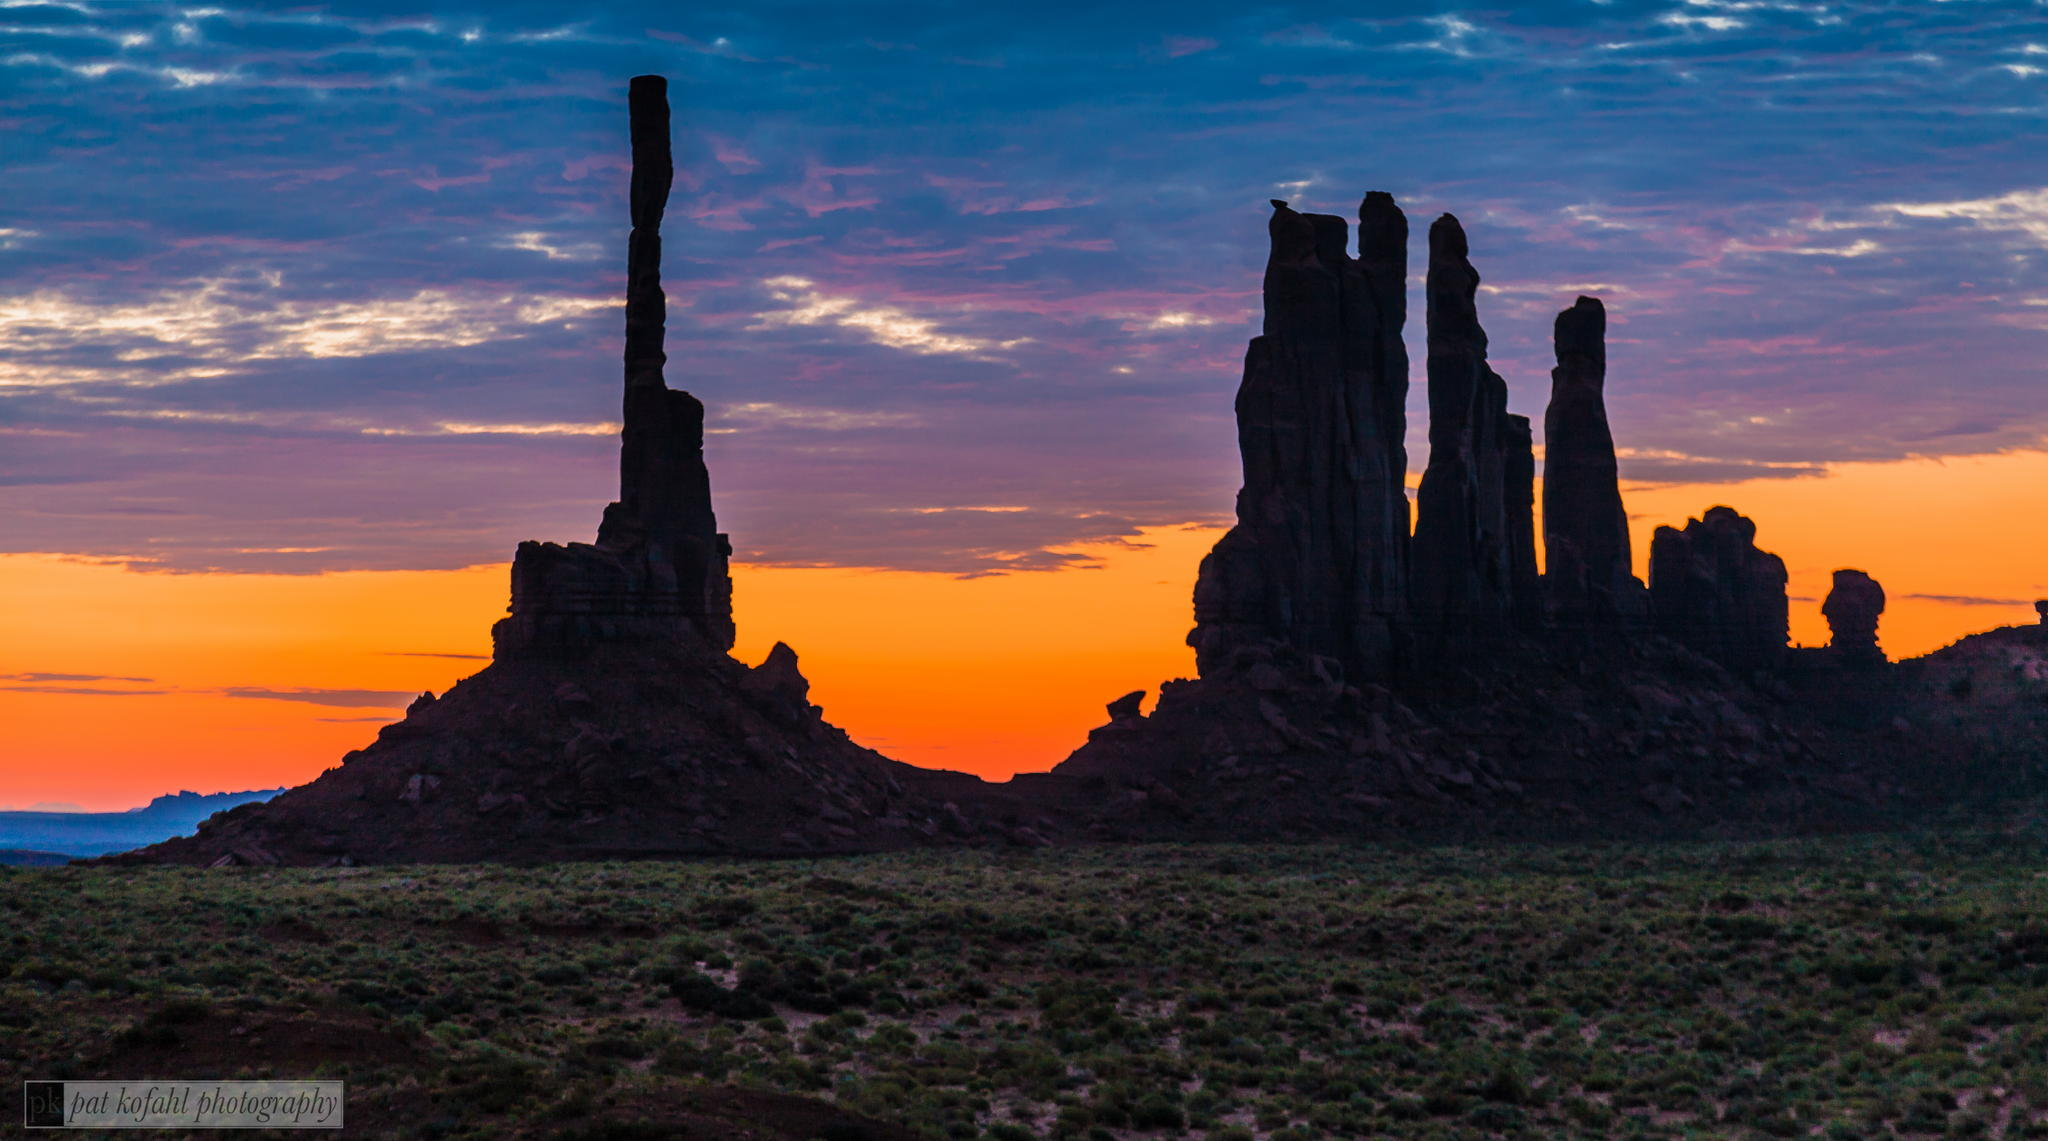 Totem Pole and Yei bi Chei formations at Monument Valley in Arizona by Pat Kofahl